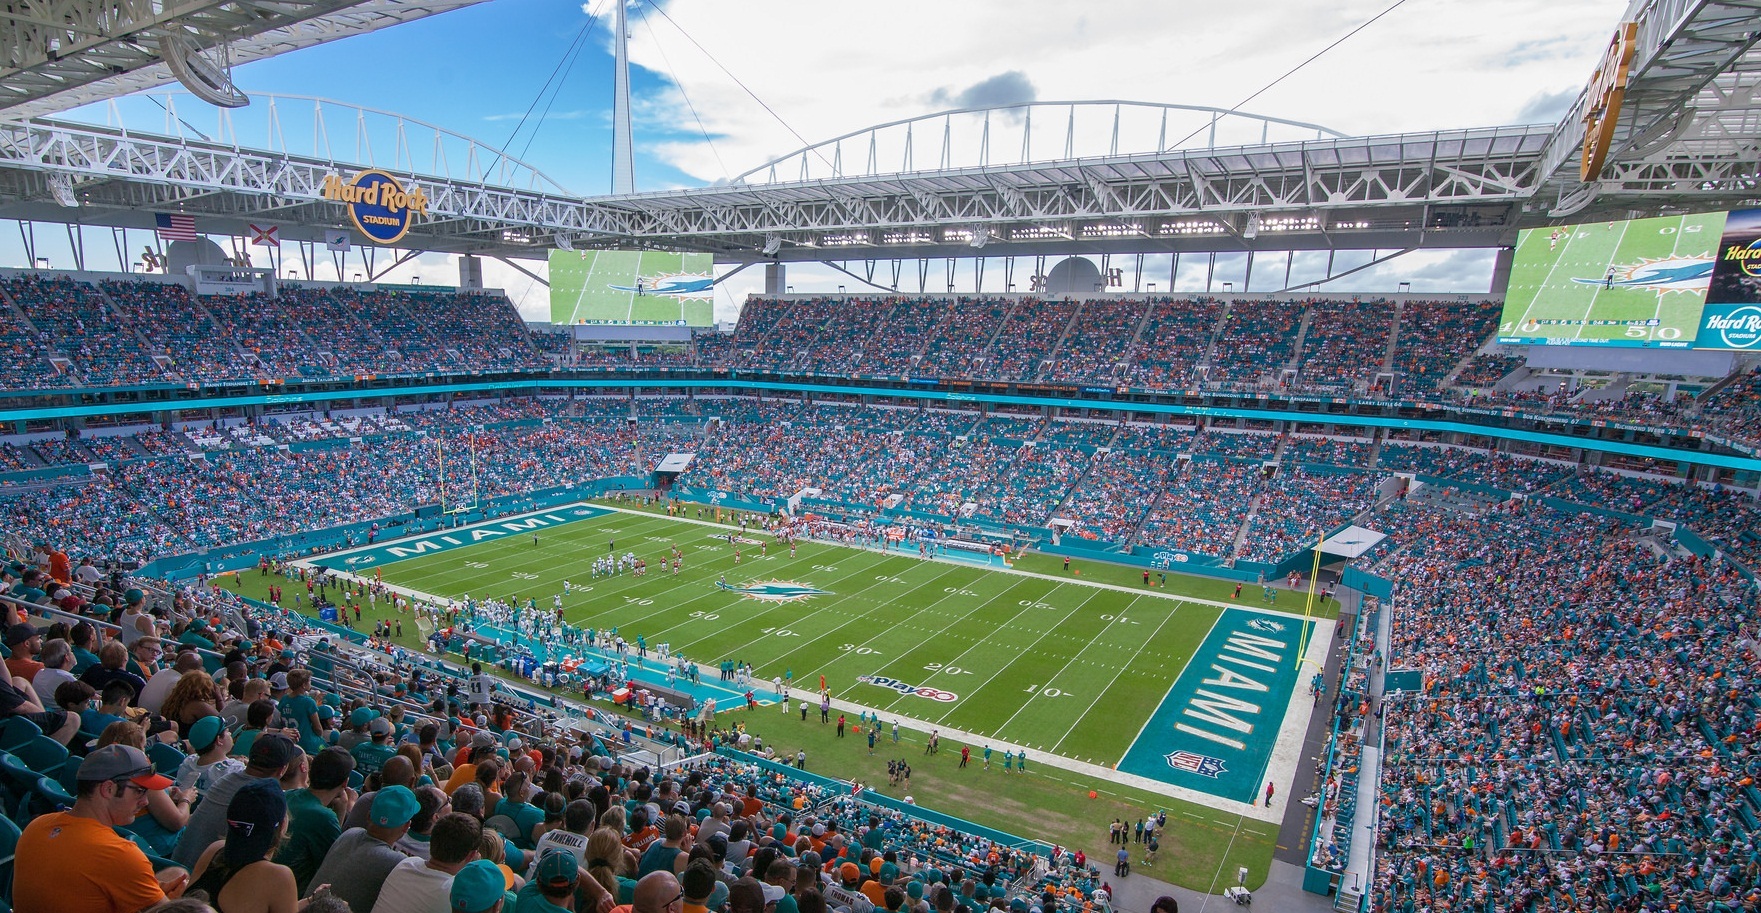 Ncaa Football Bowls 2018 >> Hard Rock Stadium, Miami Dolphins football stadium - Stadiums of Pro Football